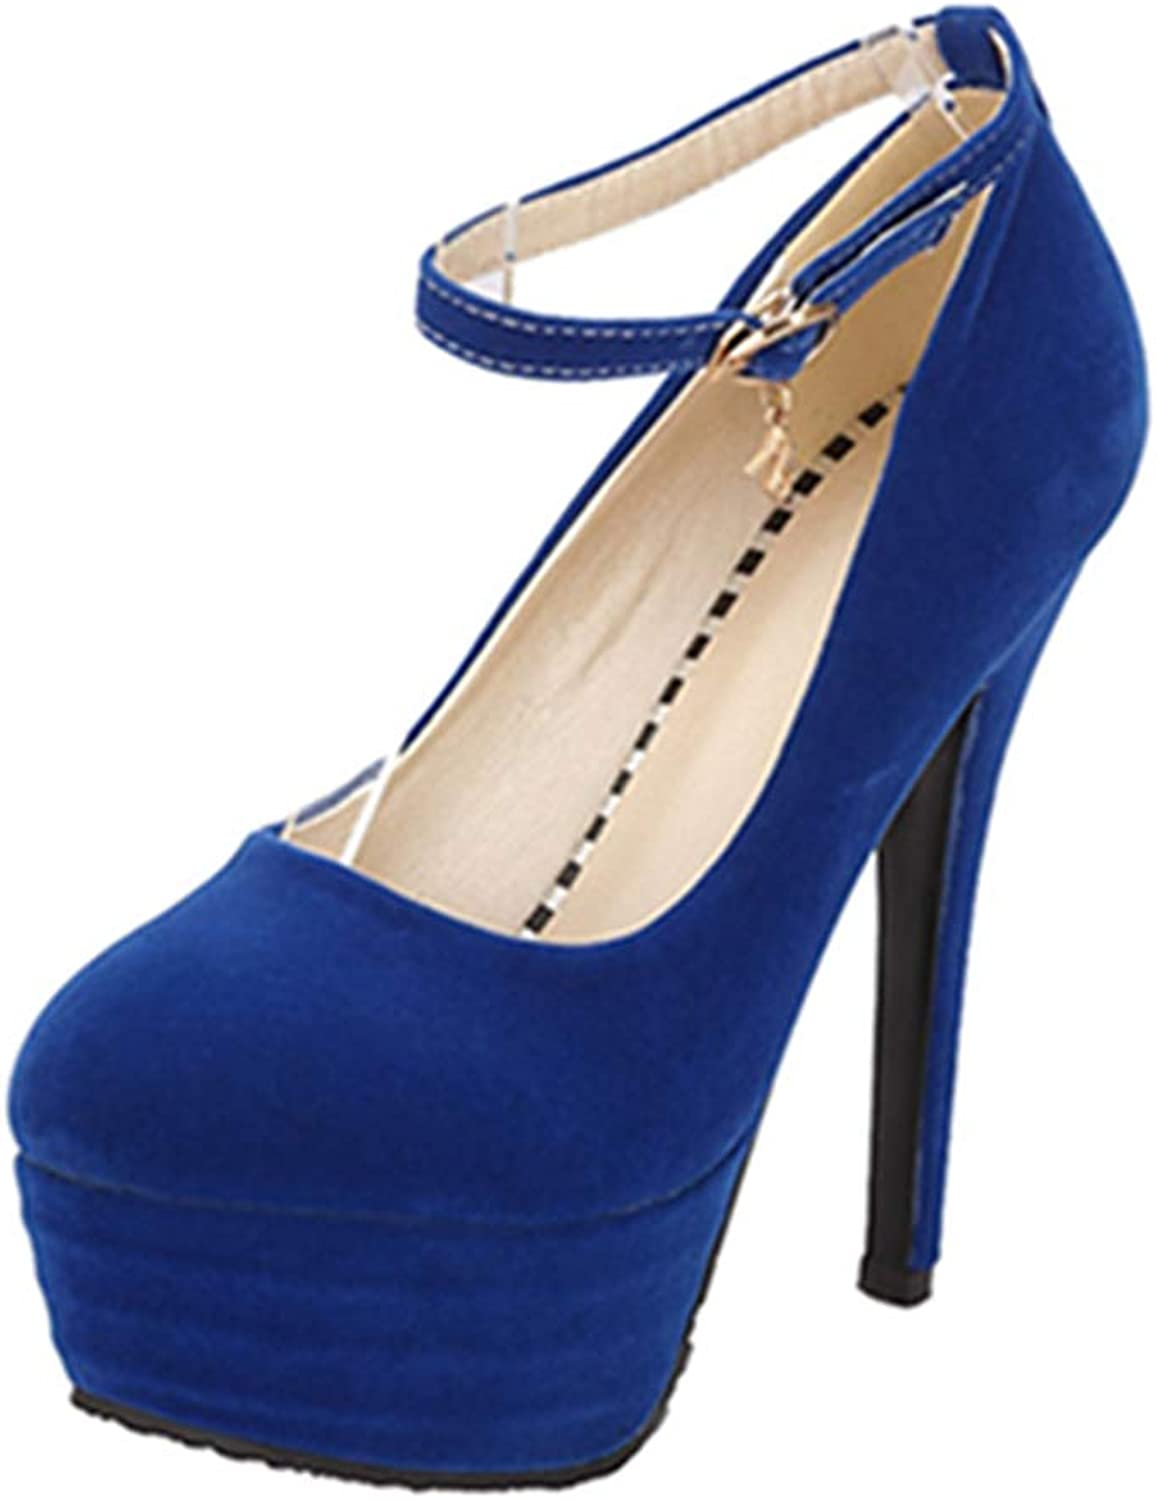 Onewus Pumps with Stiletto and Thick Platform Sexy Dressy shoes